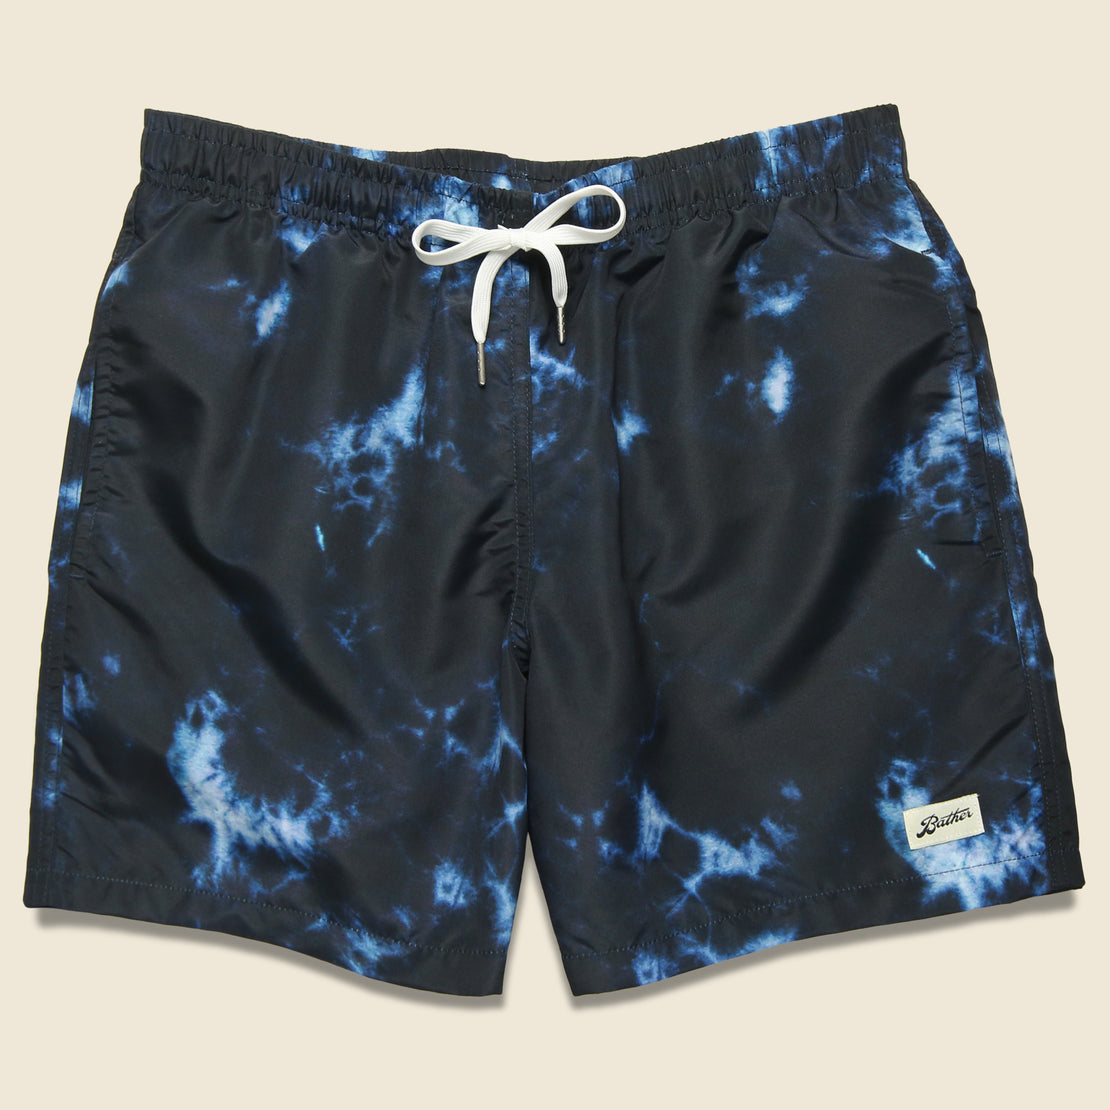 Bather Trunk Co. Shibori Dyed Swim Trunk - Indigo